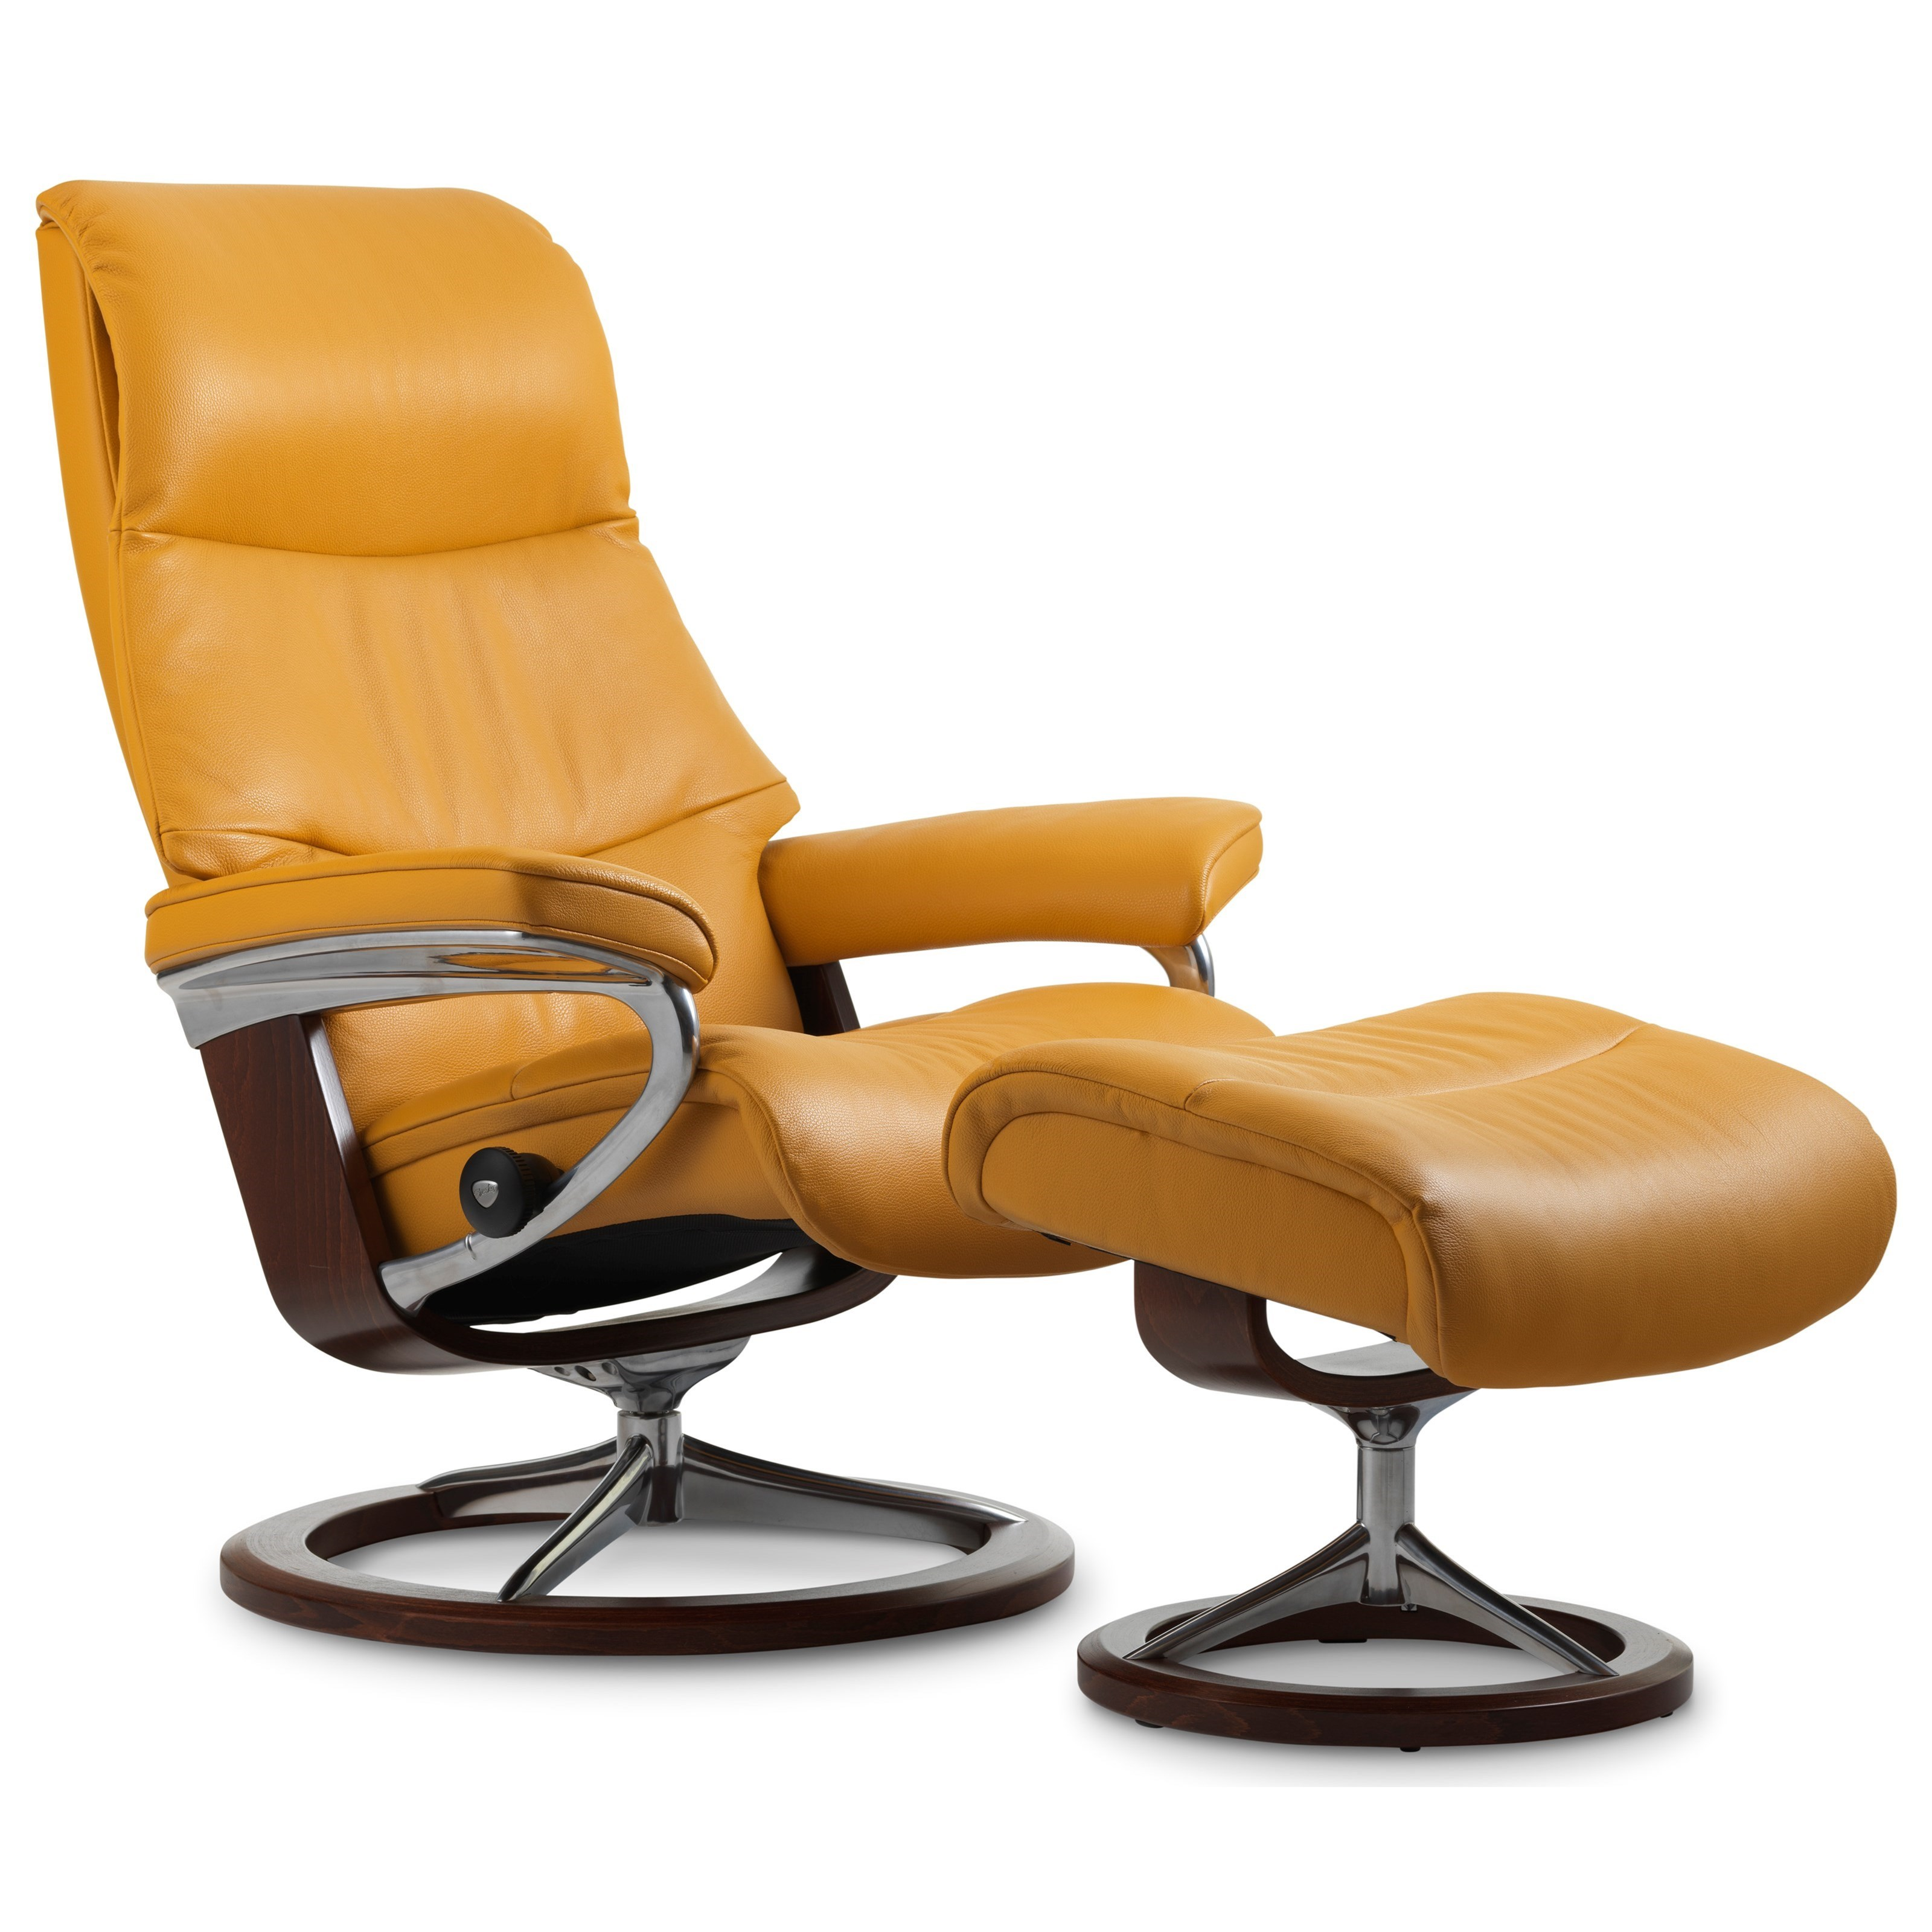 View Medium Chair & Ottoman with Signature Base by Stressless at Virginia Furniture Market